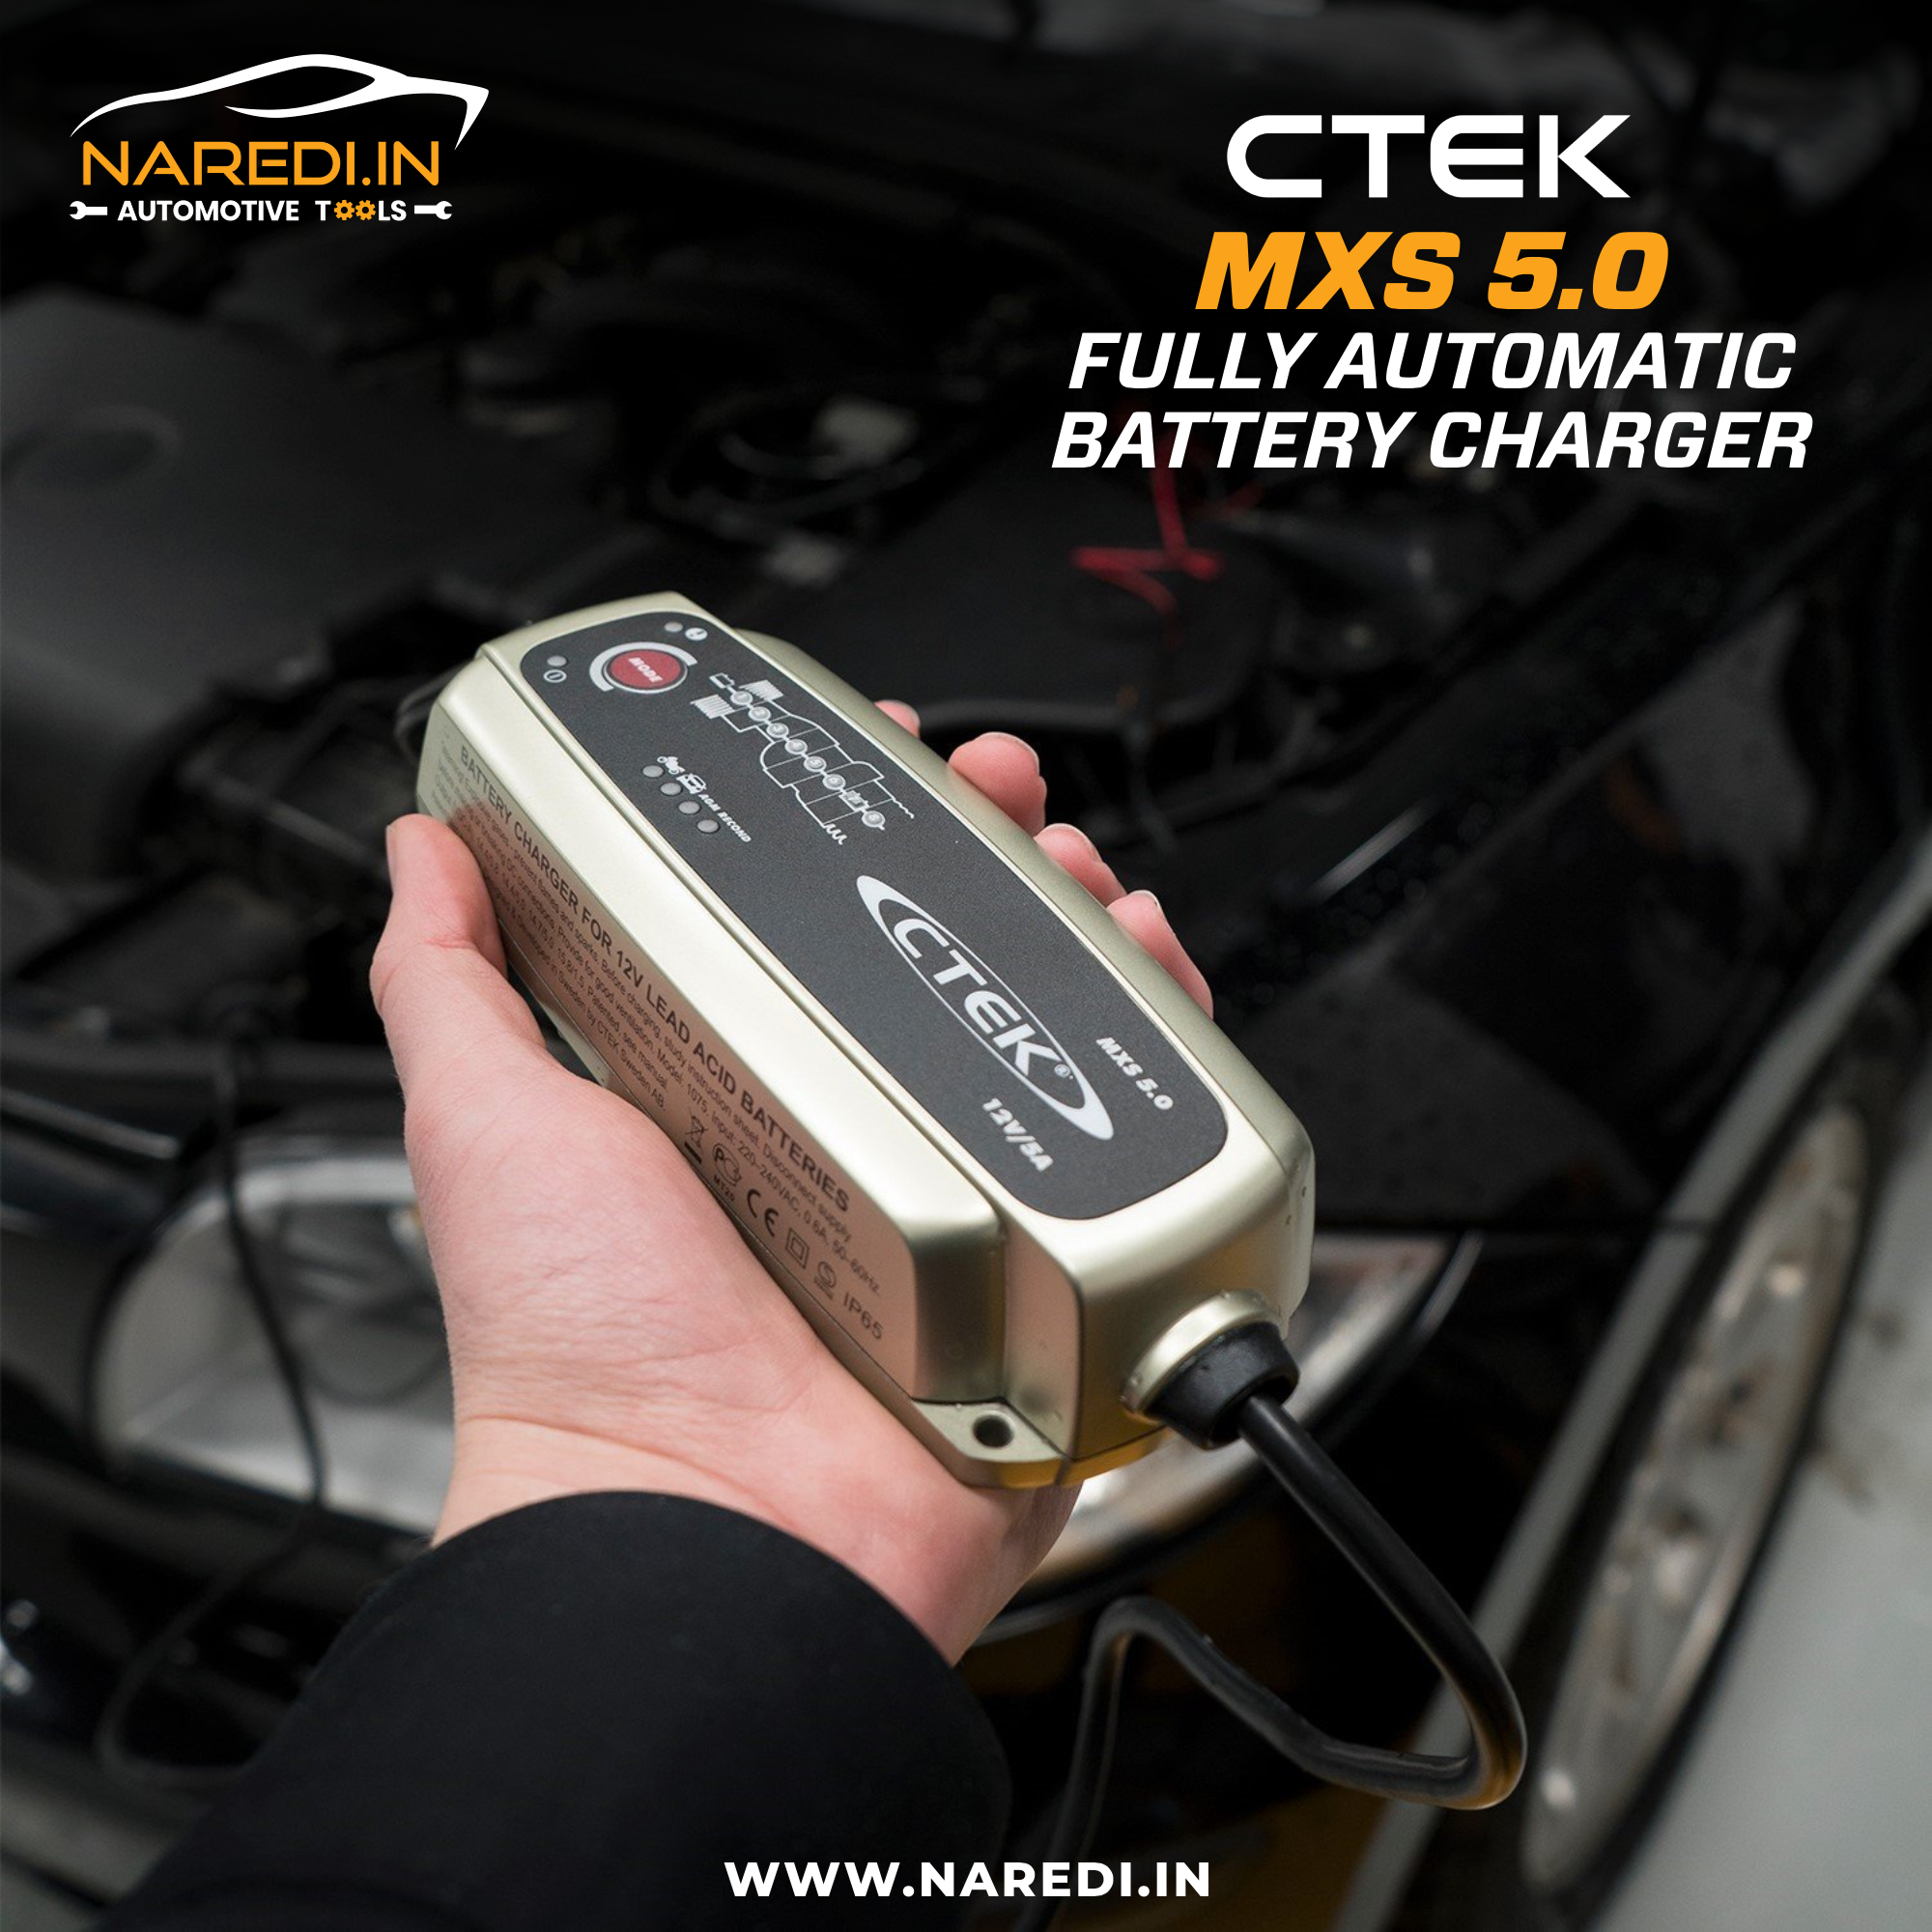 The Ctek Mxs 5 0 Is An Intelligent Battery Charger And Maintainer All In One Compact Shock Pro Automatic Battery Charger Car Battery Charger Battery Charger